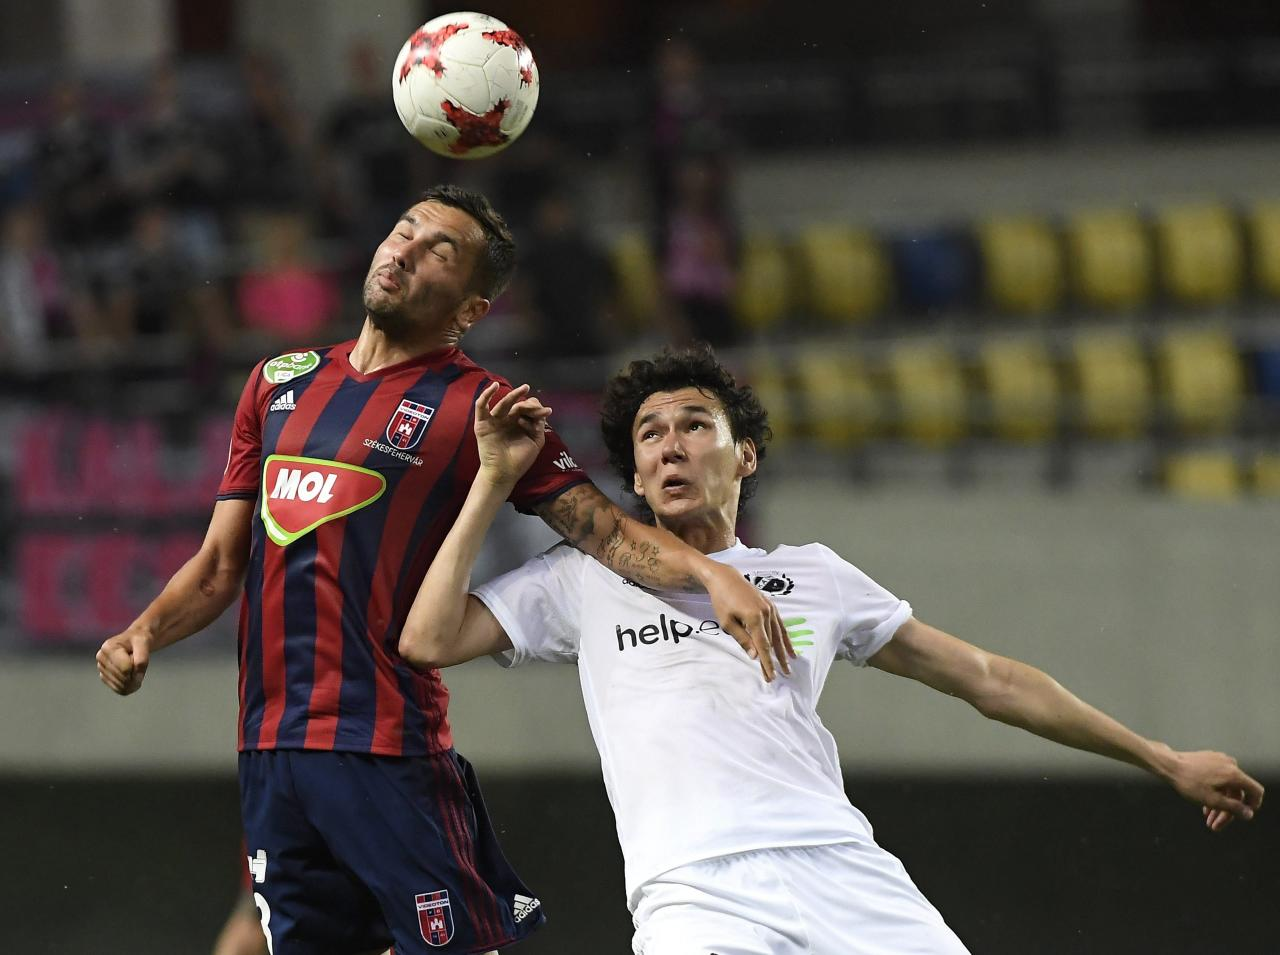 Anel Hadzic of Videoton, left, in action with Artur Valikaev of Nomme Kalju during the UEFA Champions League second qualifying round second leg match of FC Videoton of Hungary and FC Nomme Kalju of Estonia in Pancho Arena in Felcsut, 42 kms southwest of Budapest, Hungary, Thursday, July 20, 2017. (Tamas Kovacs/MTI via AP)